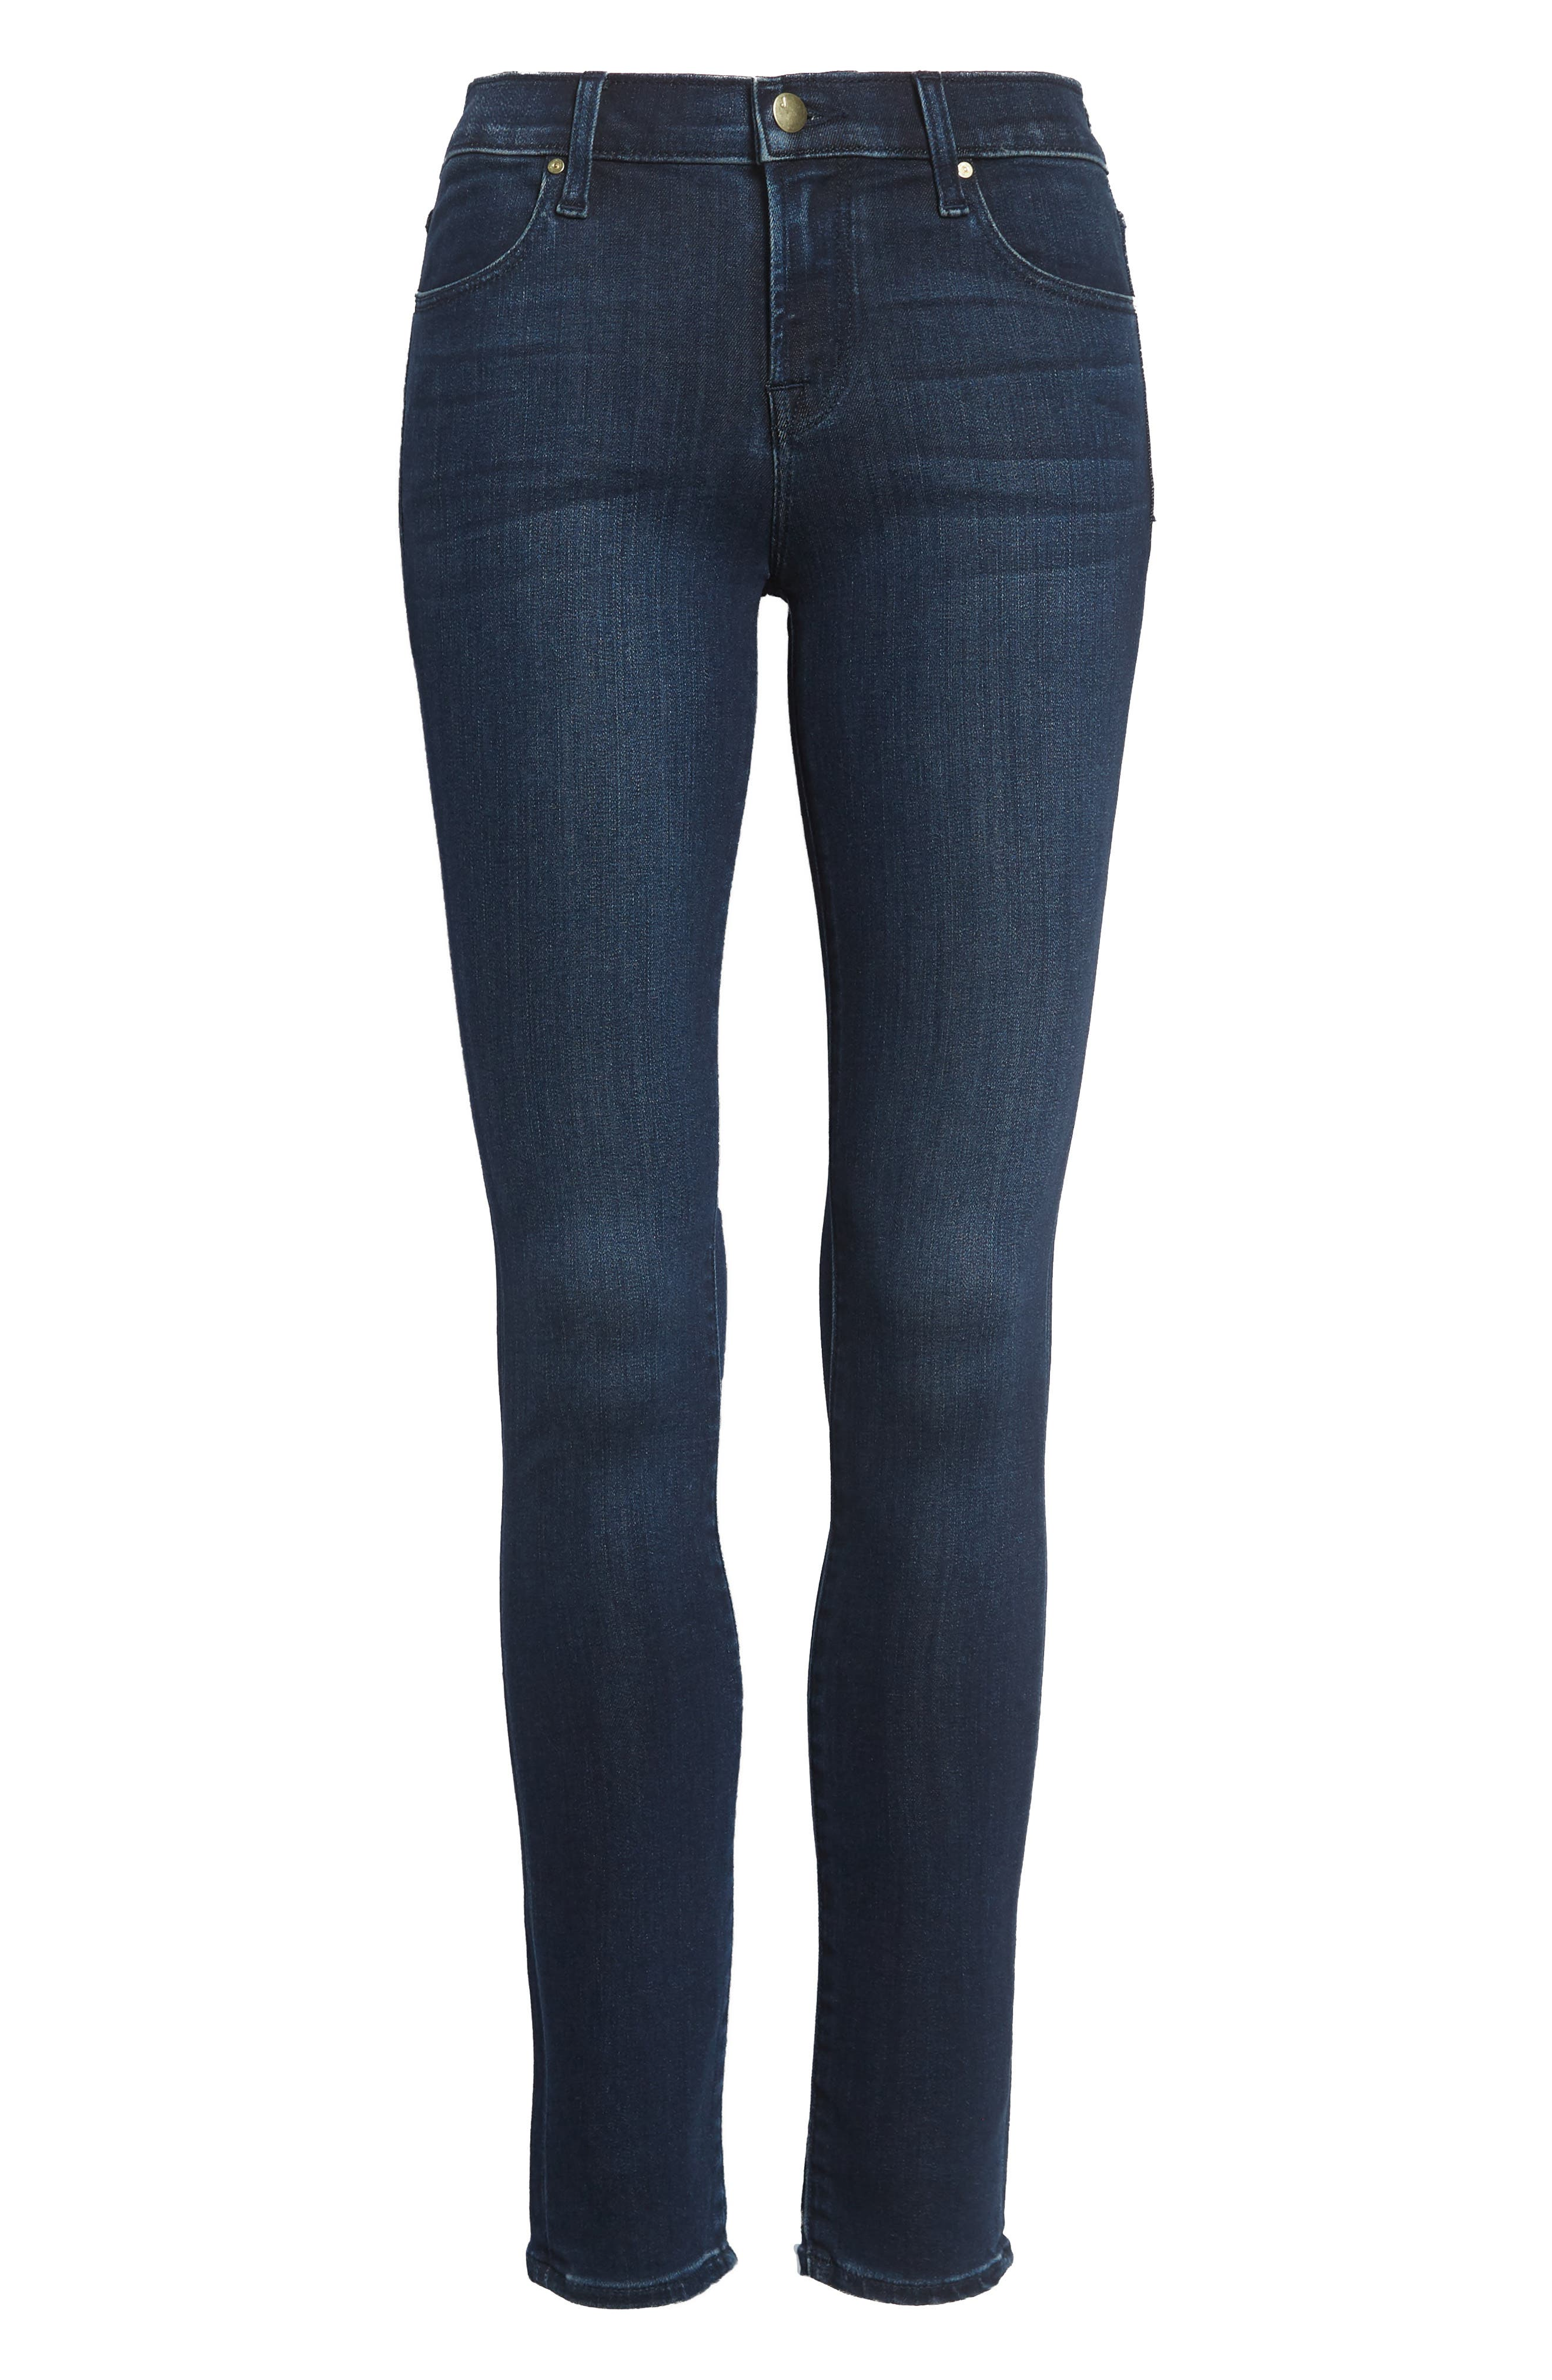 '620' Mid Rise Super Skinny Jeans, Main, color, 401